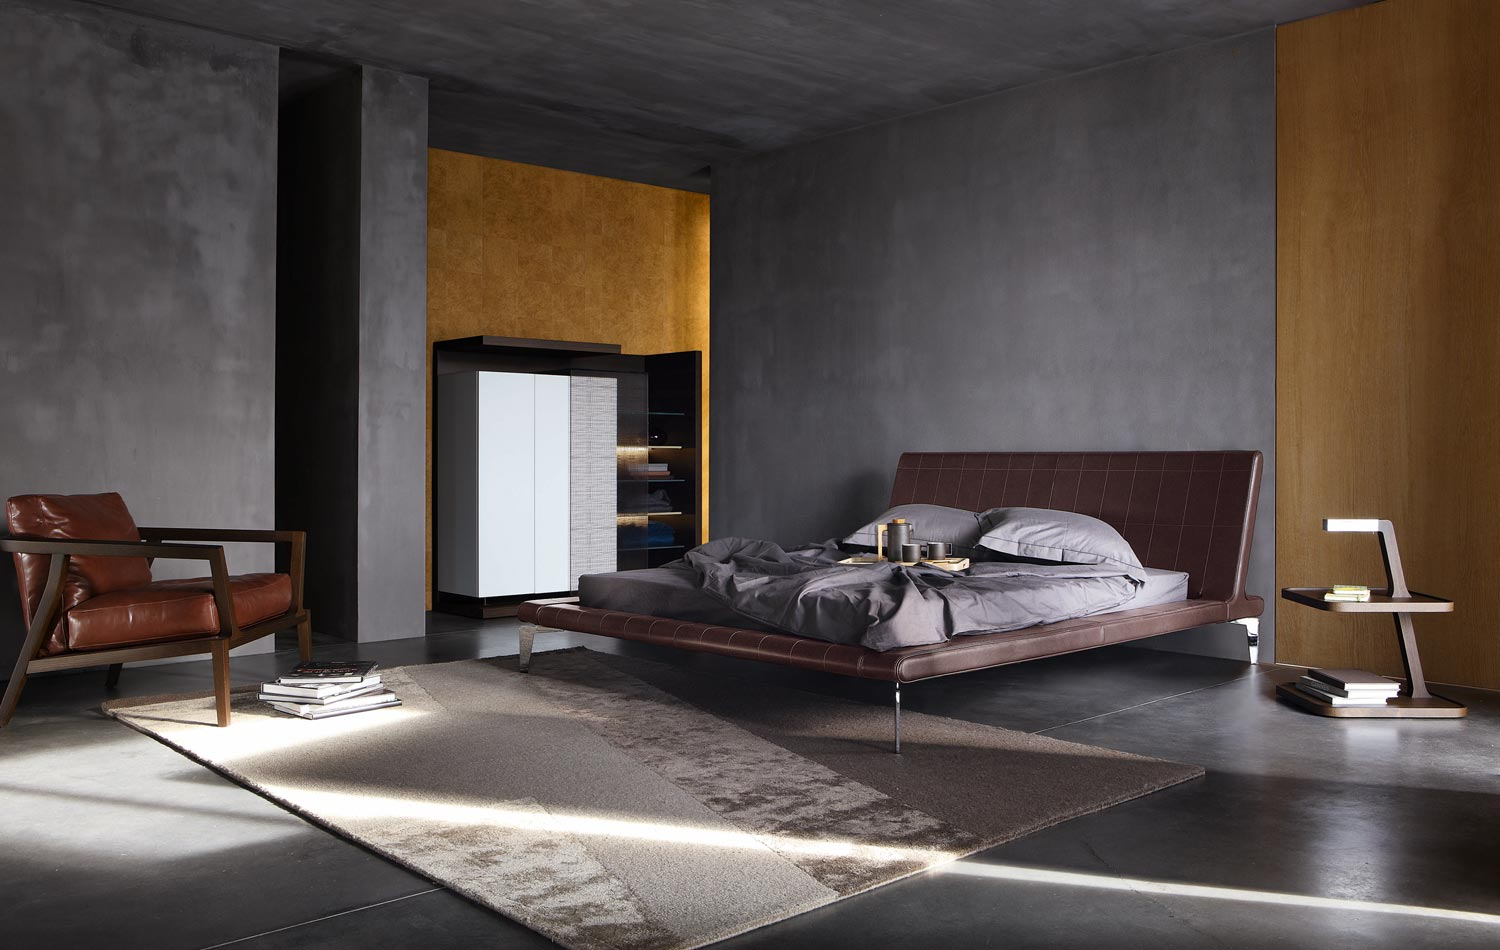 Inspiring Bedrooms Bedroom Inspiration 20 Modern Beds By Roche Bobois